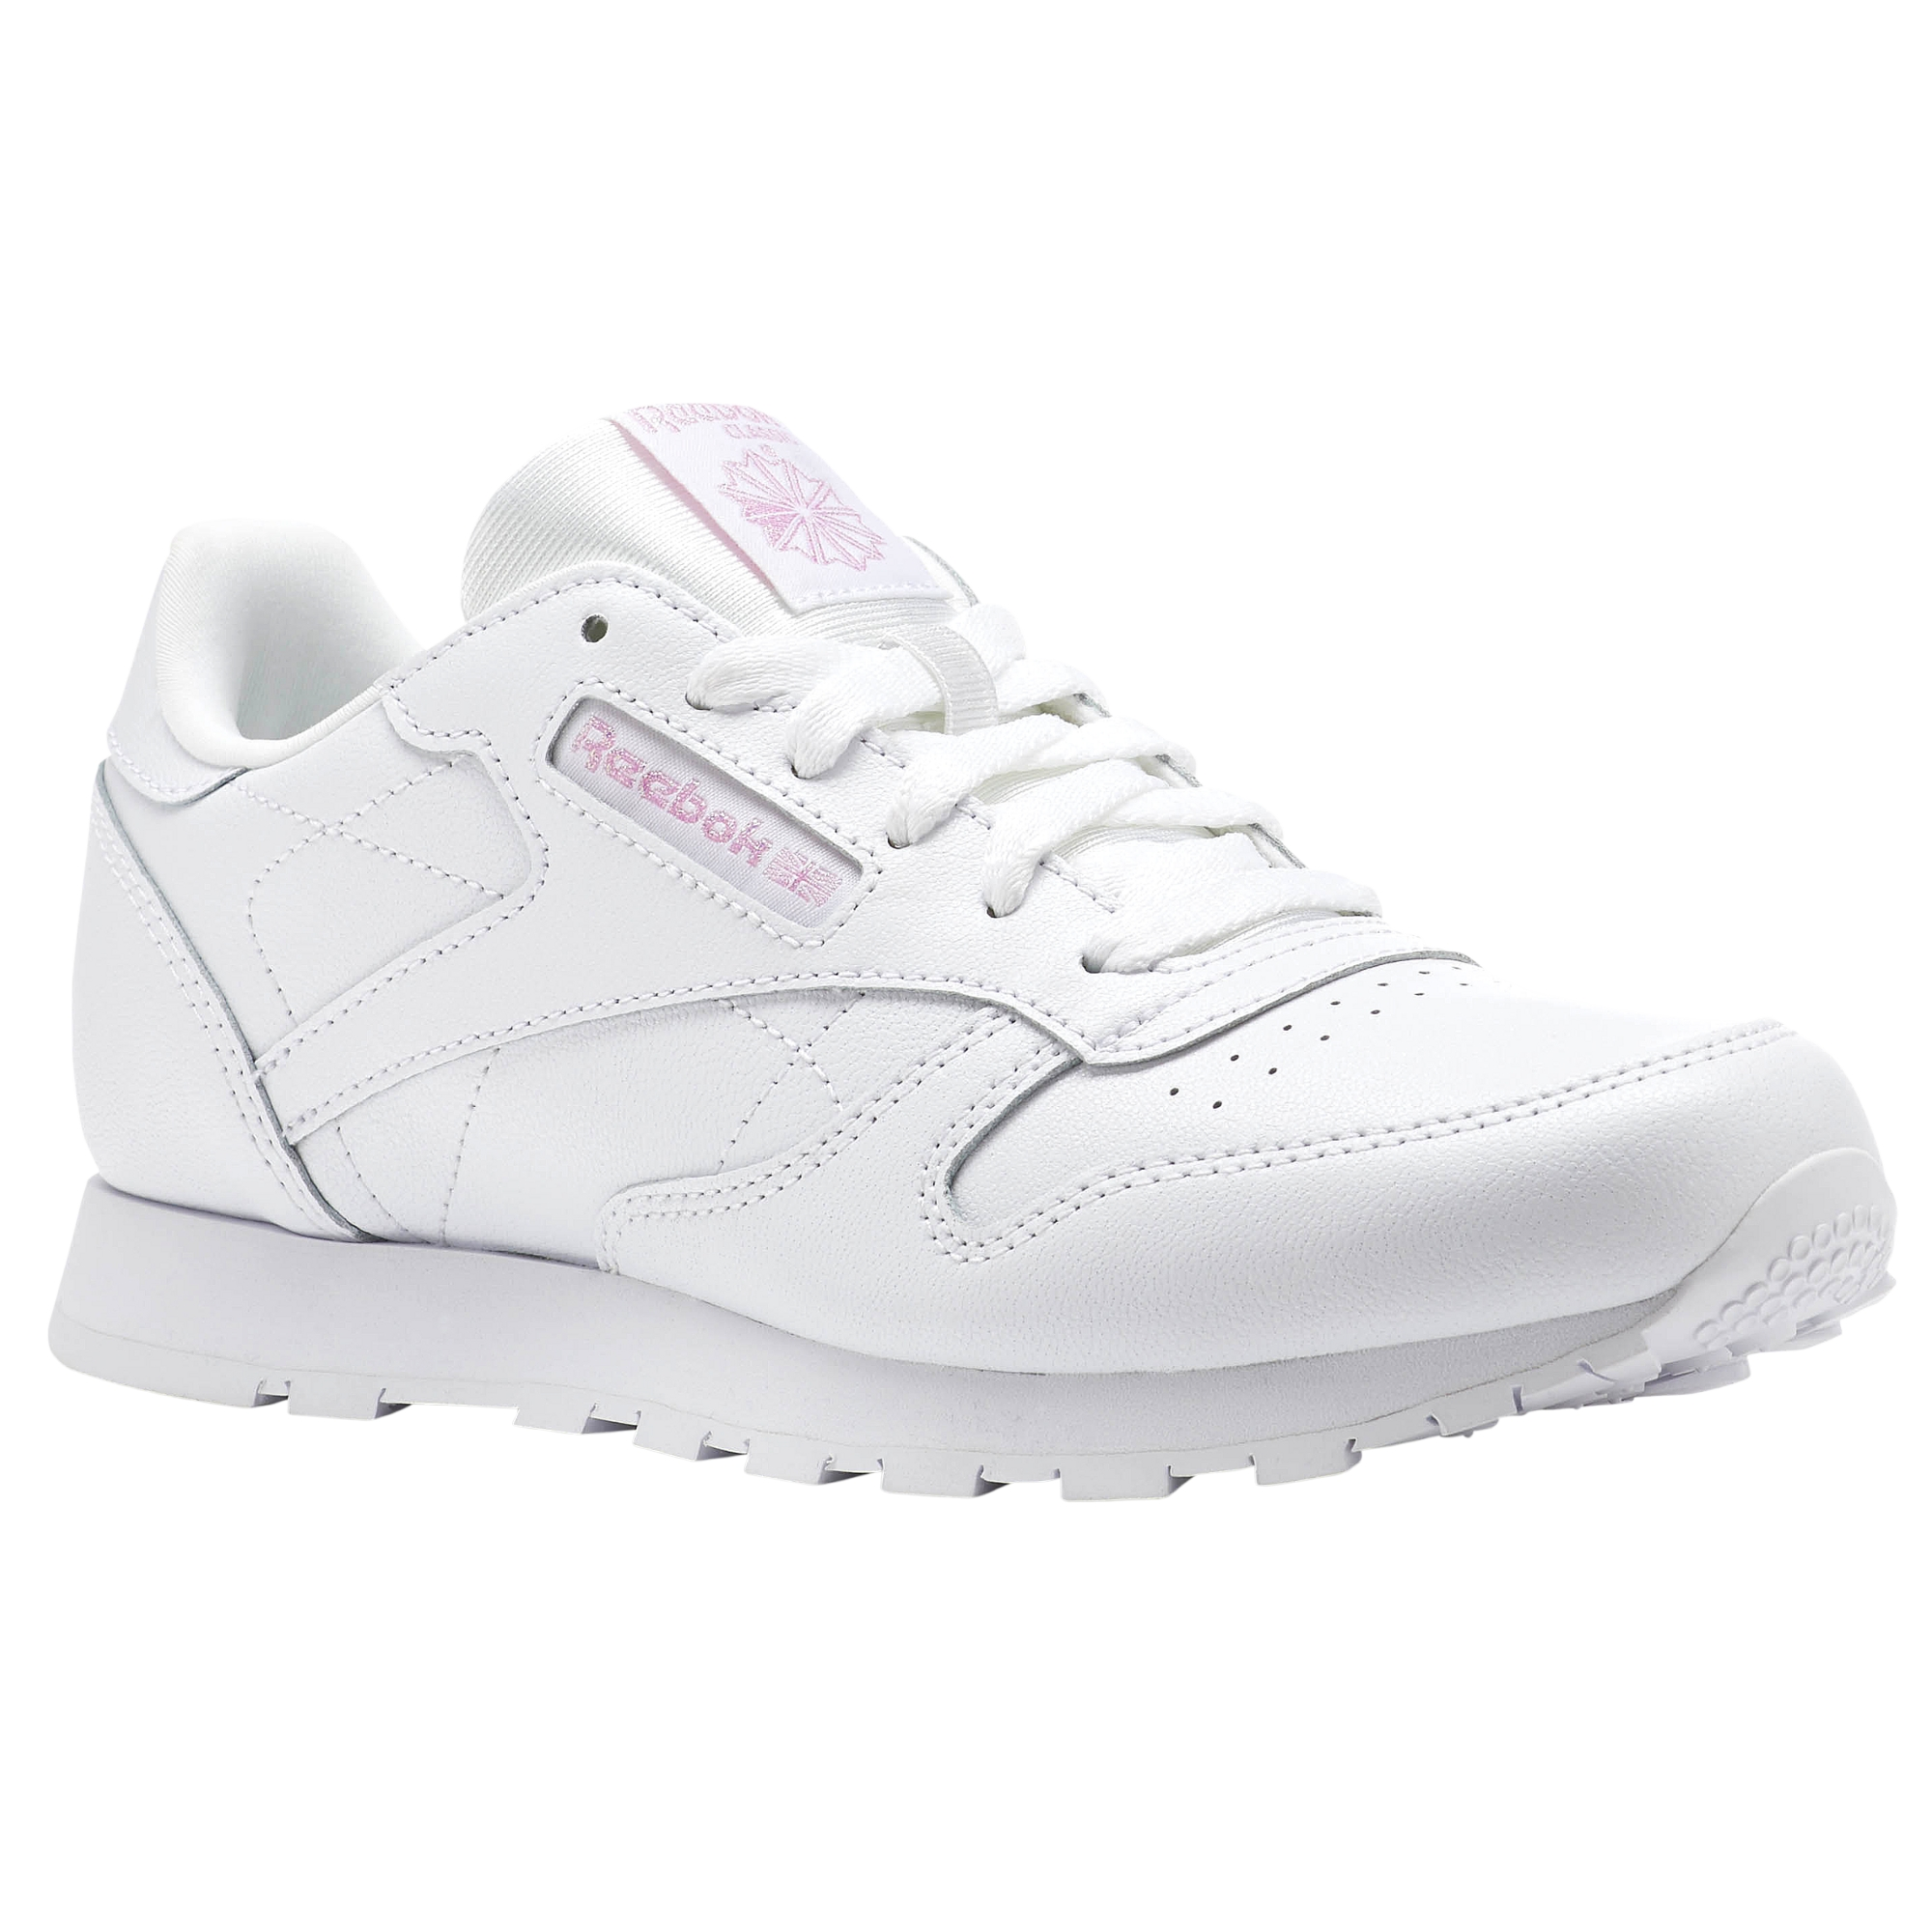 a2409ed6b59de ... Reebok Classic Leather Metallic CM9323 ...